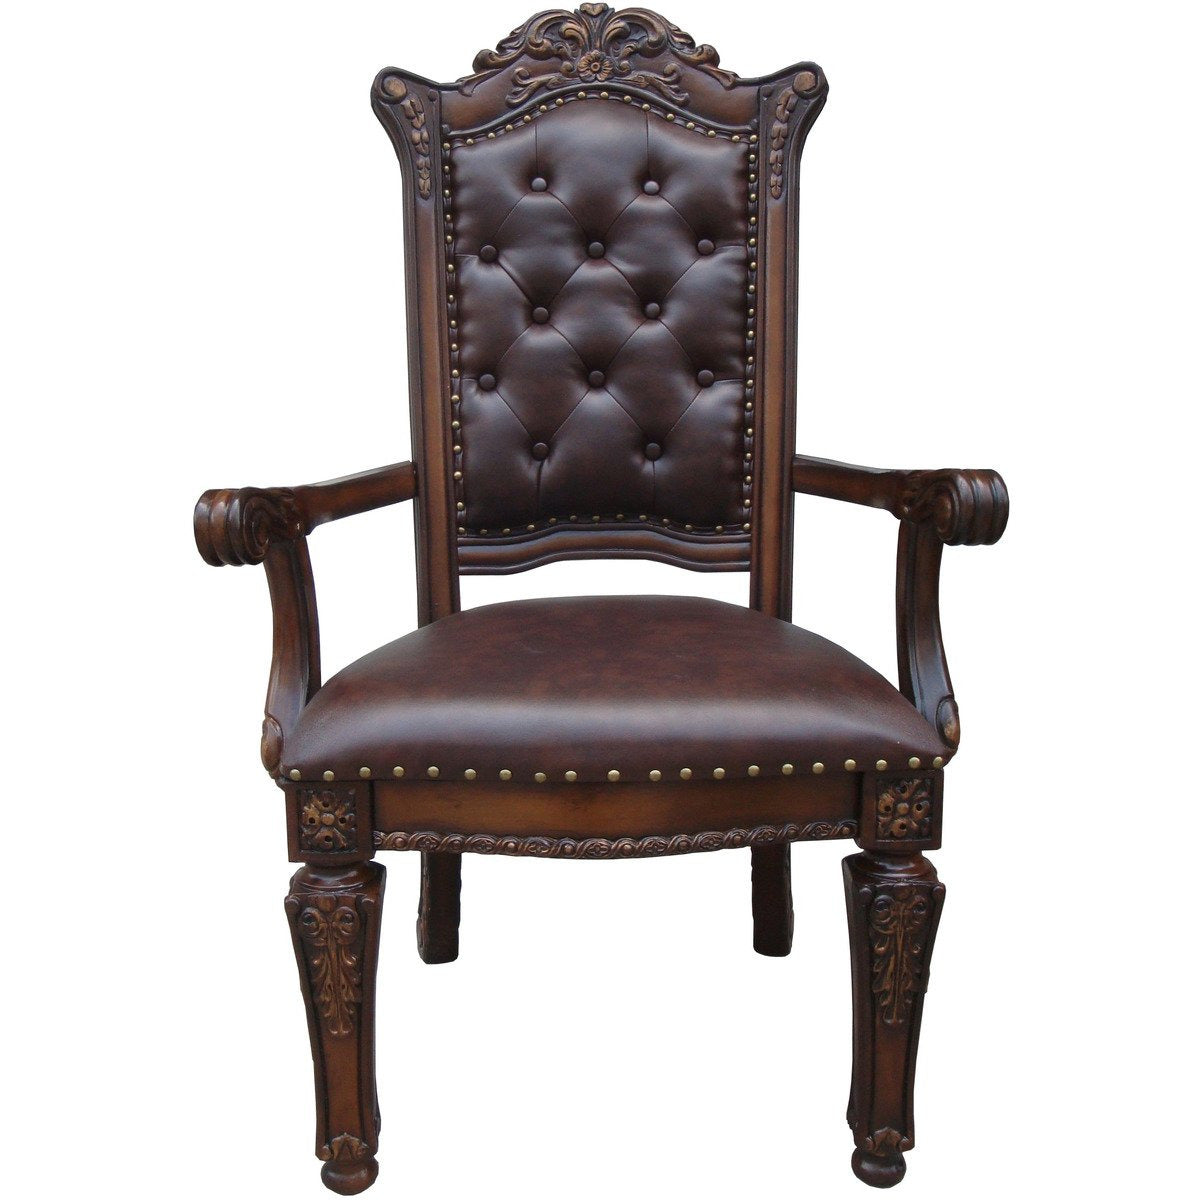 Dining Chairs - Leather Upholstered Button Tufted Wooden Side Chair, Set Of Two,Brown